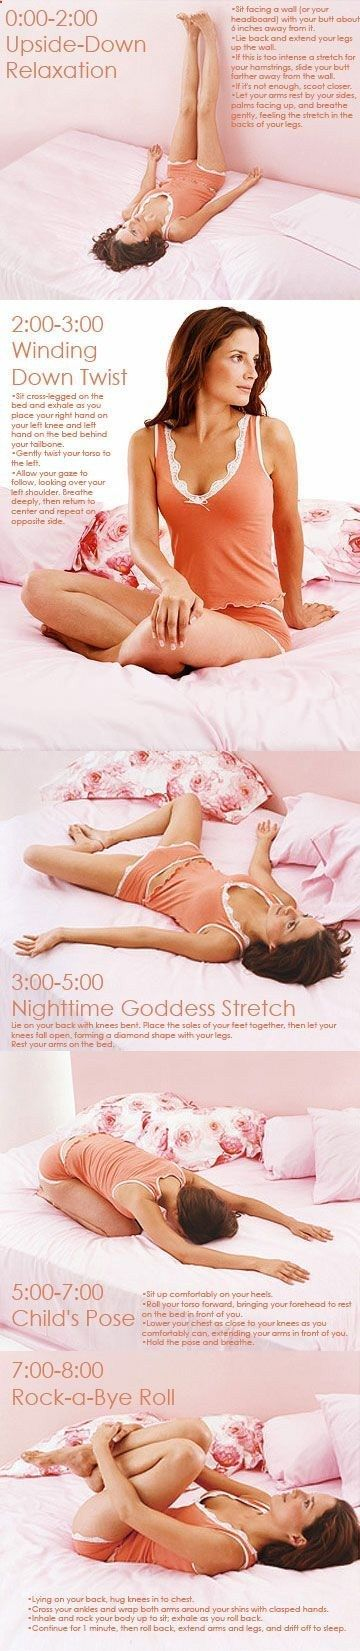 8-Minute Workout: Yoga for Better Sleep. Great way to wind down before bed. .